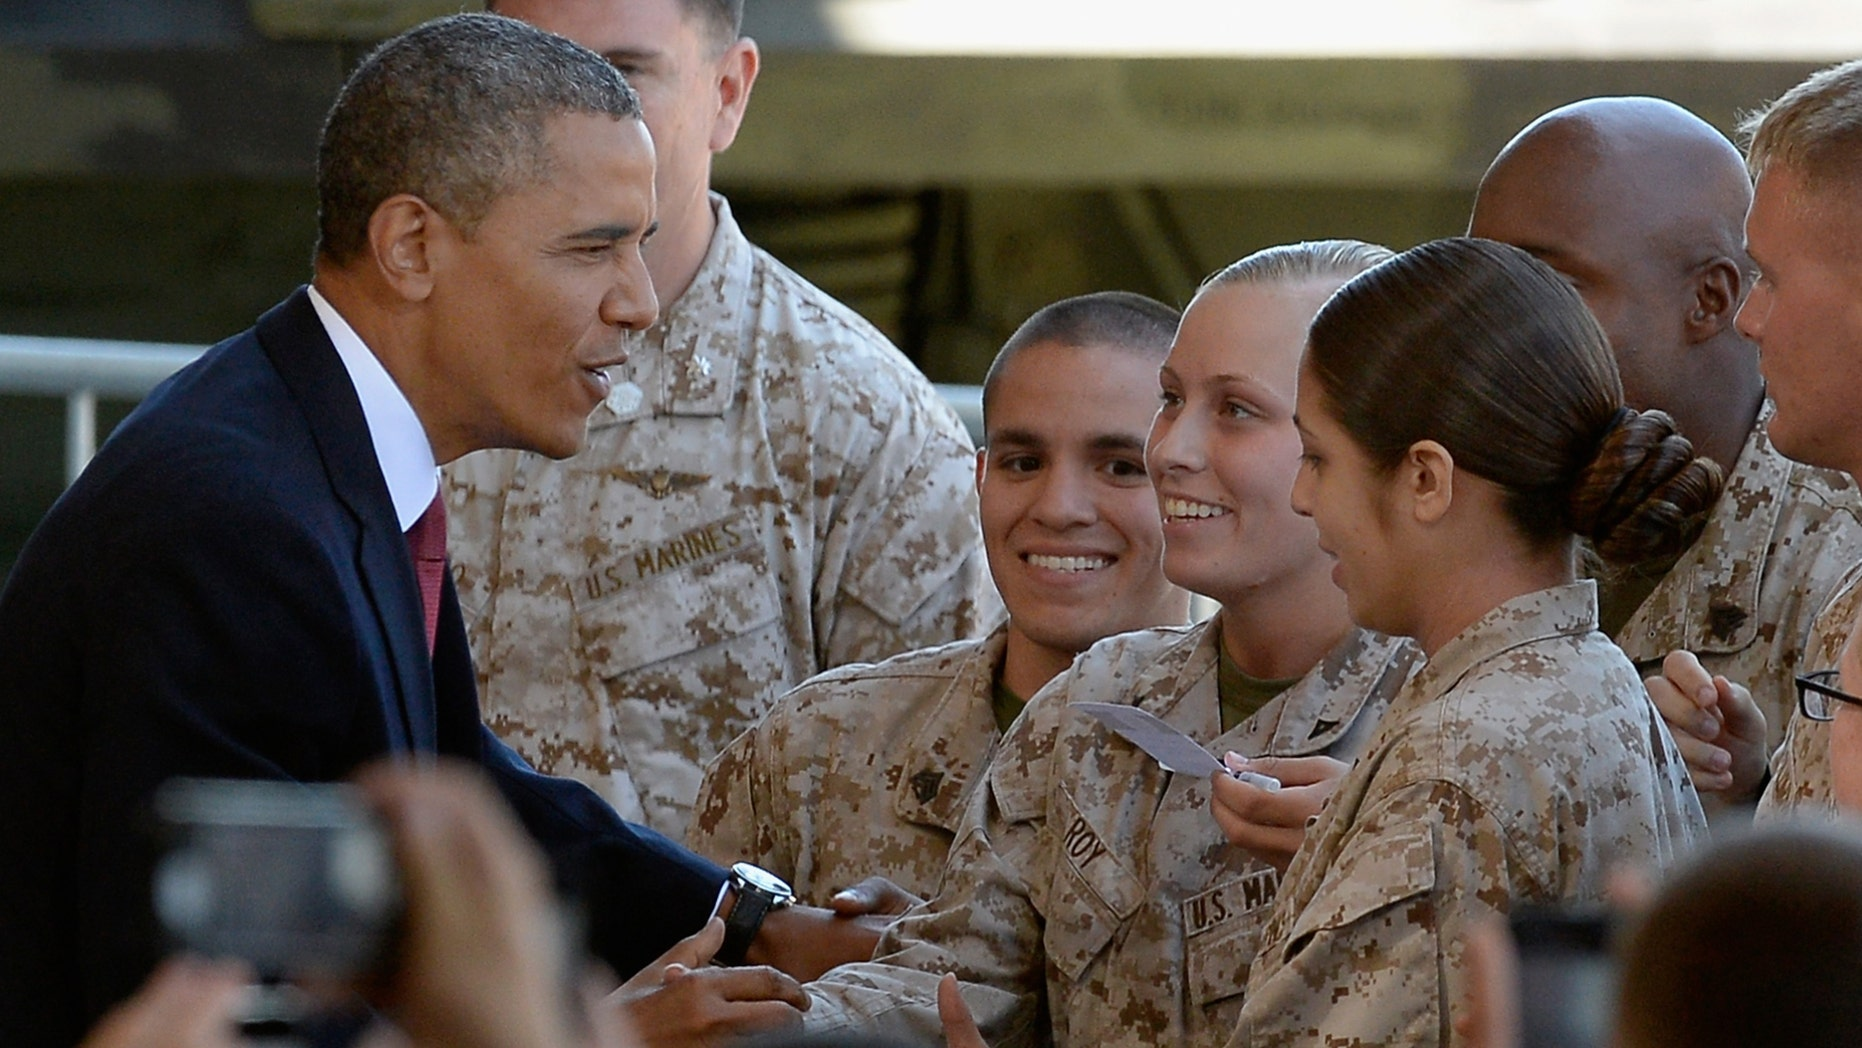 CAMP PENDLETON, CA - AUGUST 07:  U.S. President Barack Obama greets Marines after speaking at Camp Pendleton Marine Corps base visiting troops and their families to thank them for their service on August 7, 2013 in Camp Pendleton, California. Obama announced today that he canceled a planned meeting with Russian President Vladimir Putin in Moscow amid tensions over National Security Agency leaker Edward Snowden and other issues.  (Photo by Kevork Djansezian/Getty Images)